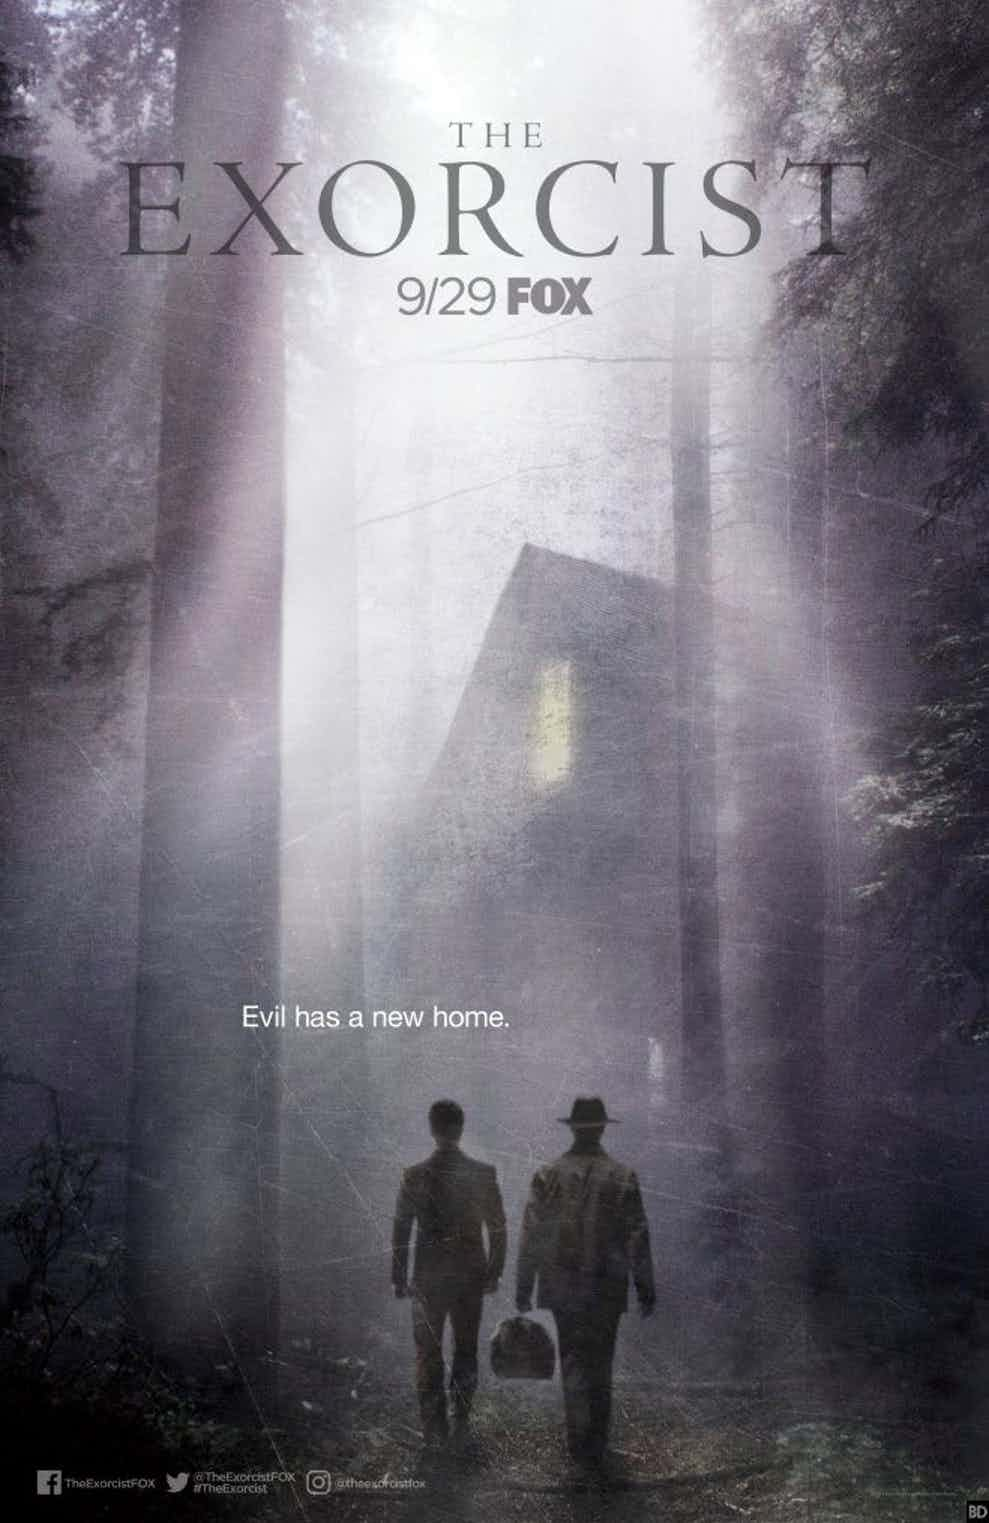 A New Breed Of Horror Takes Shape In This Eerie Poster For The Exorcist Season 2